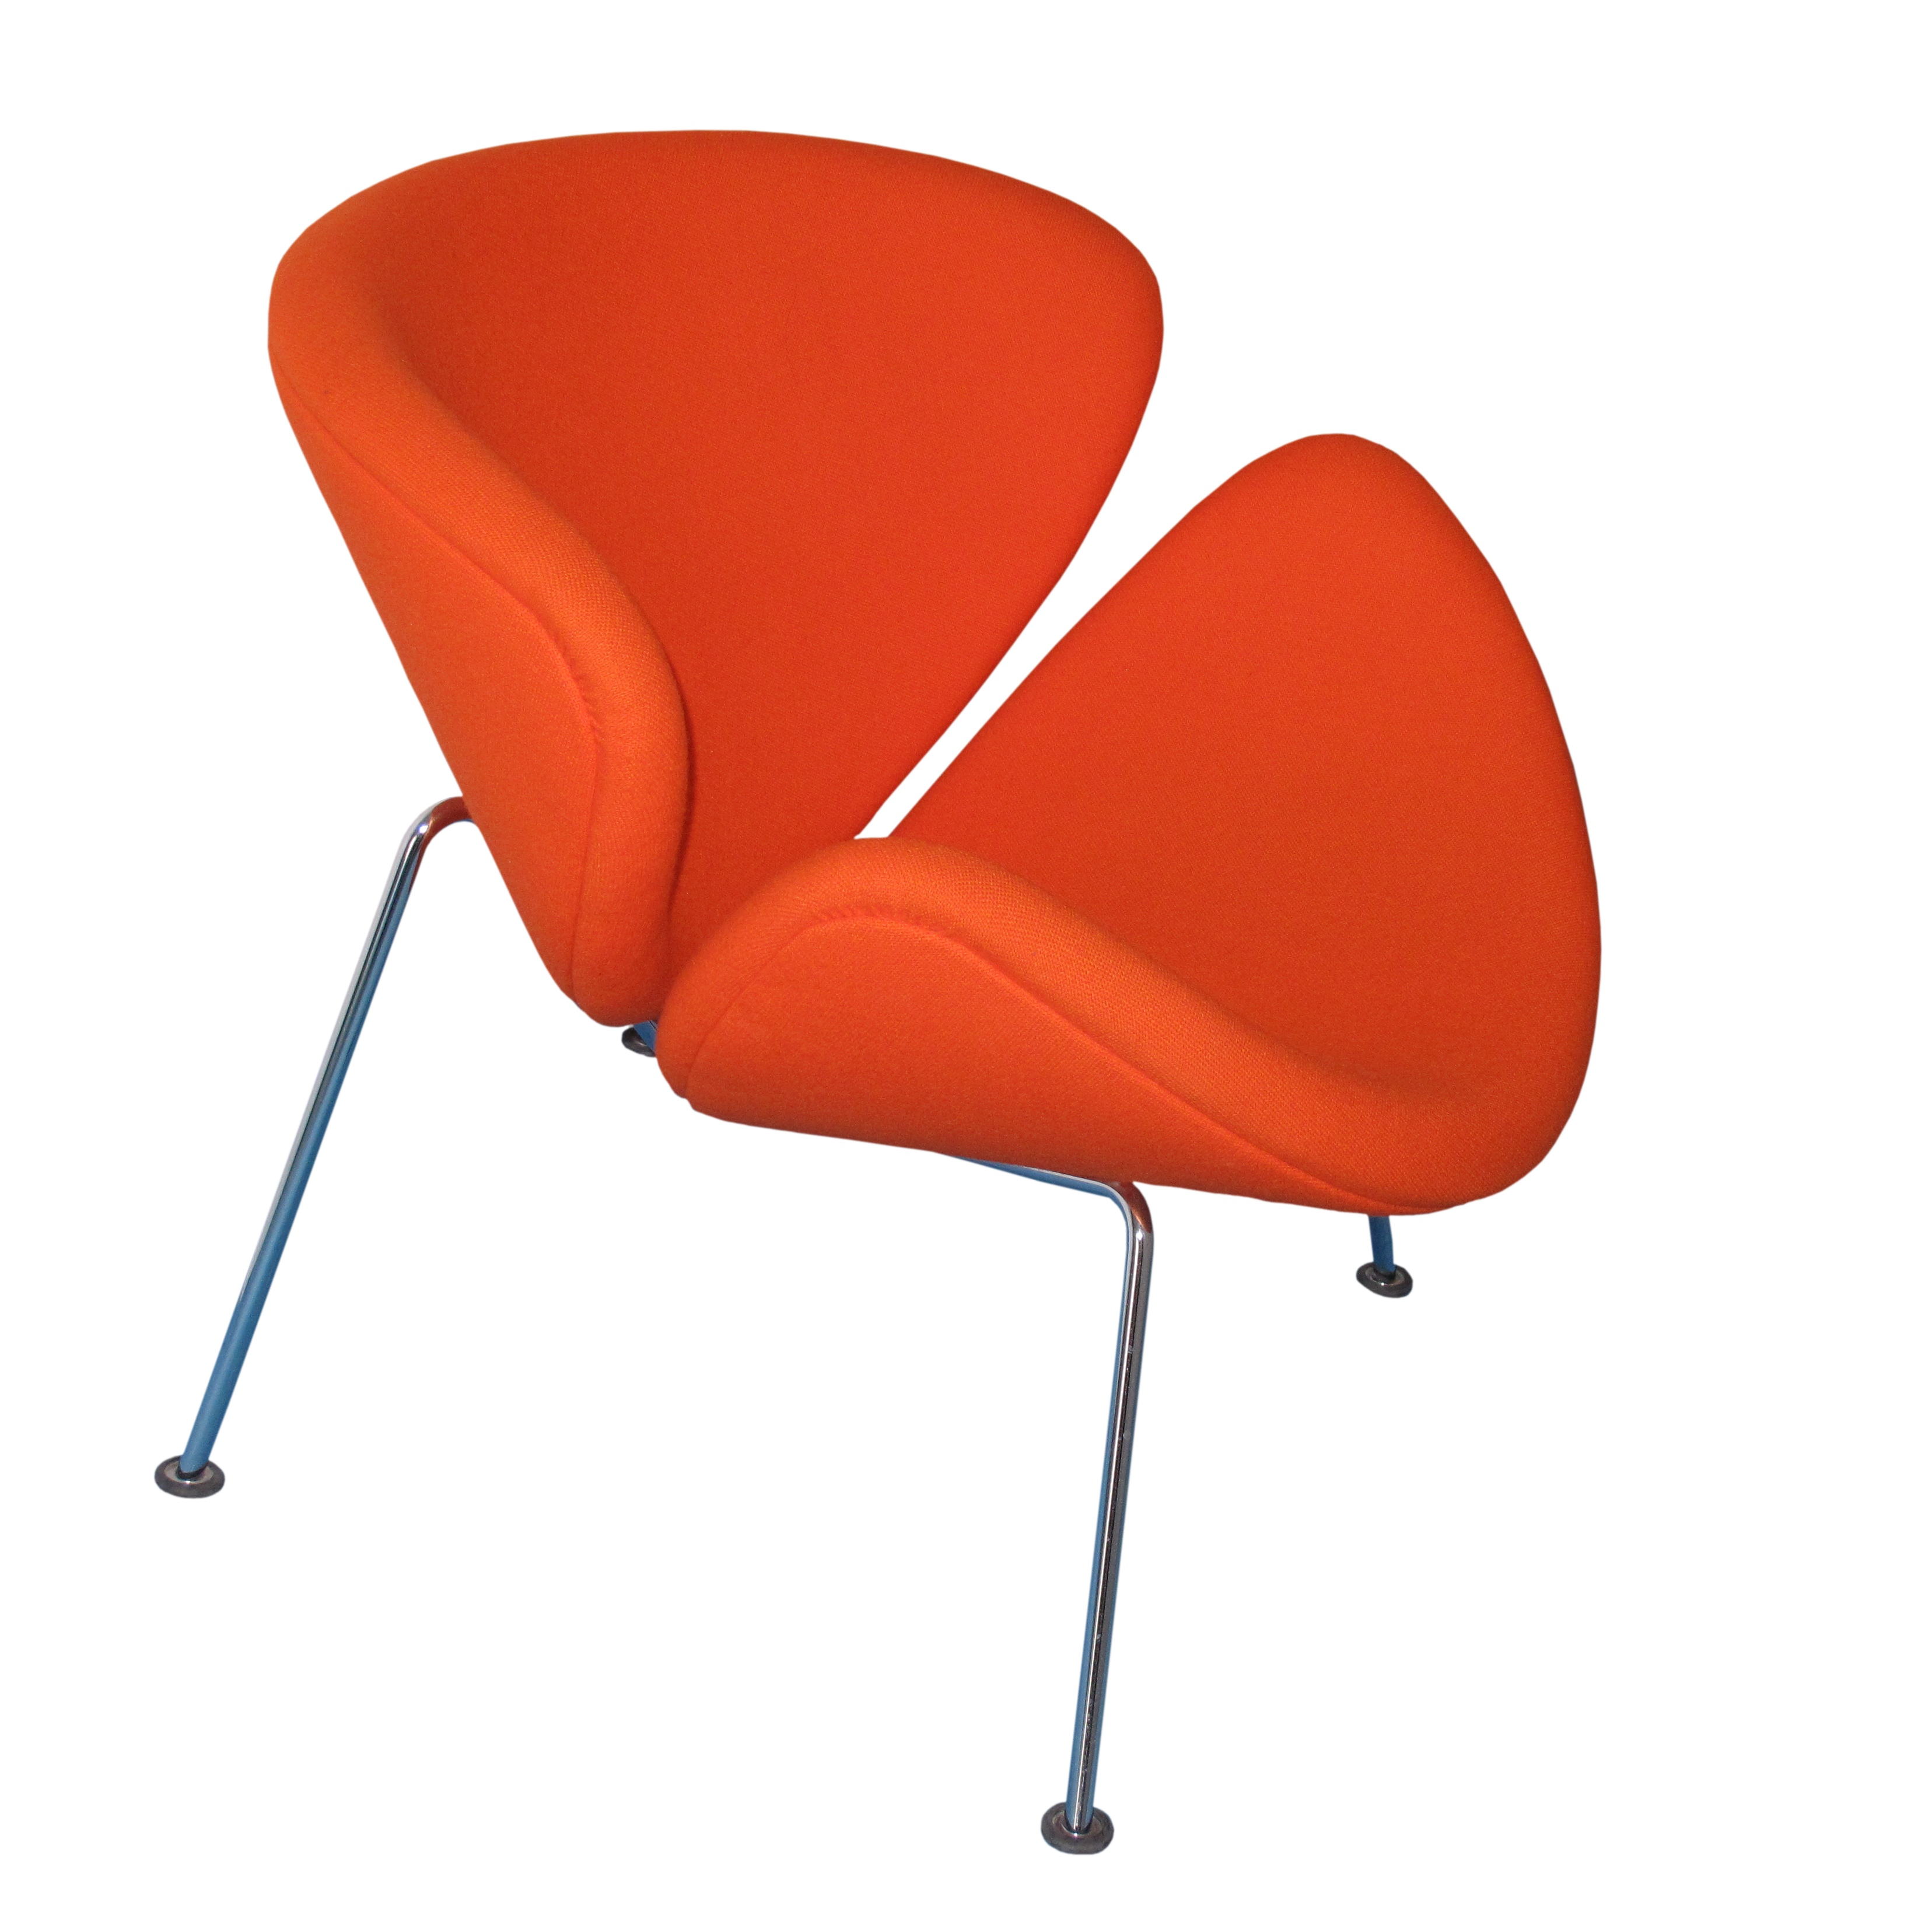 File Orange Slice Chair Pierre Paulin IMG 5834 white